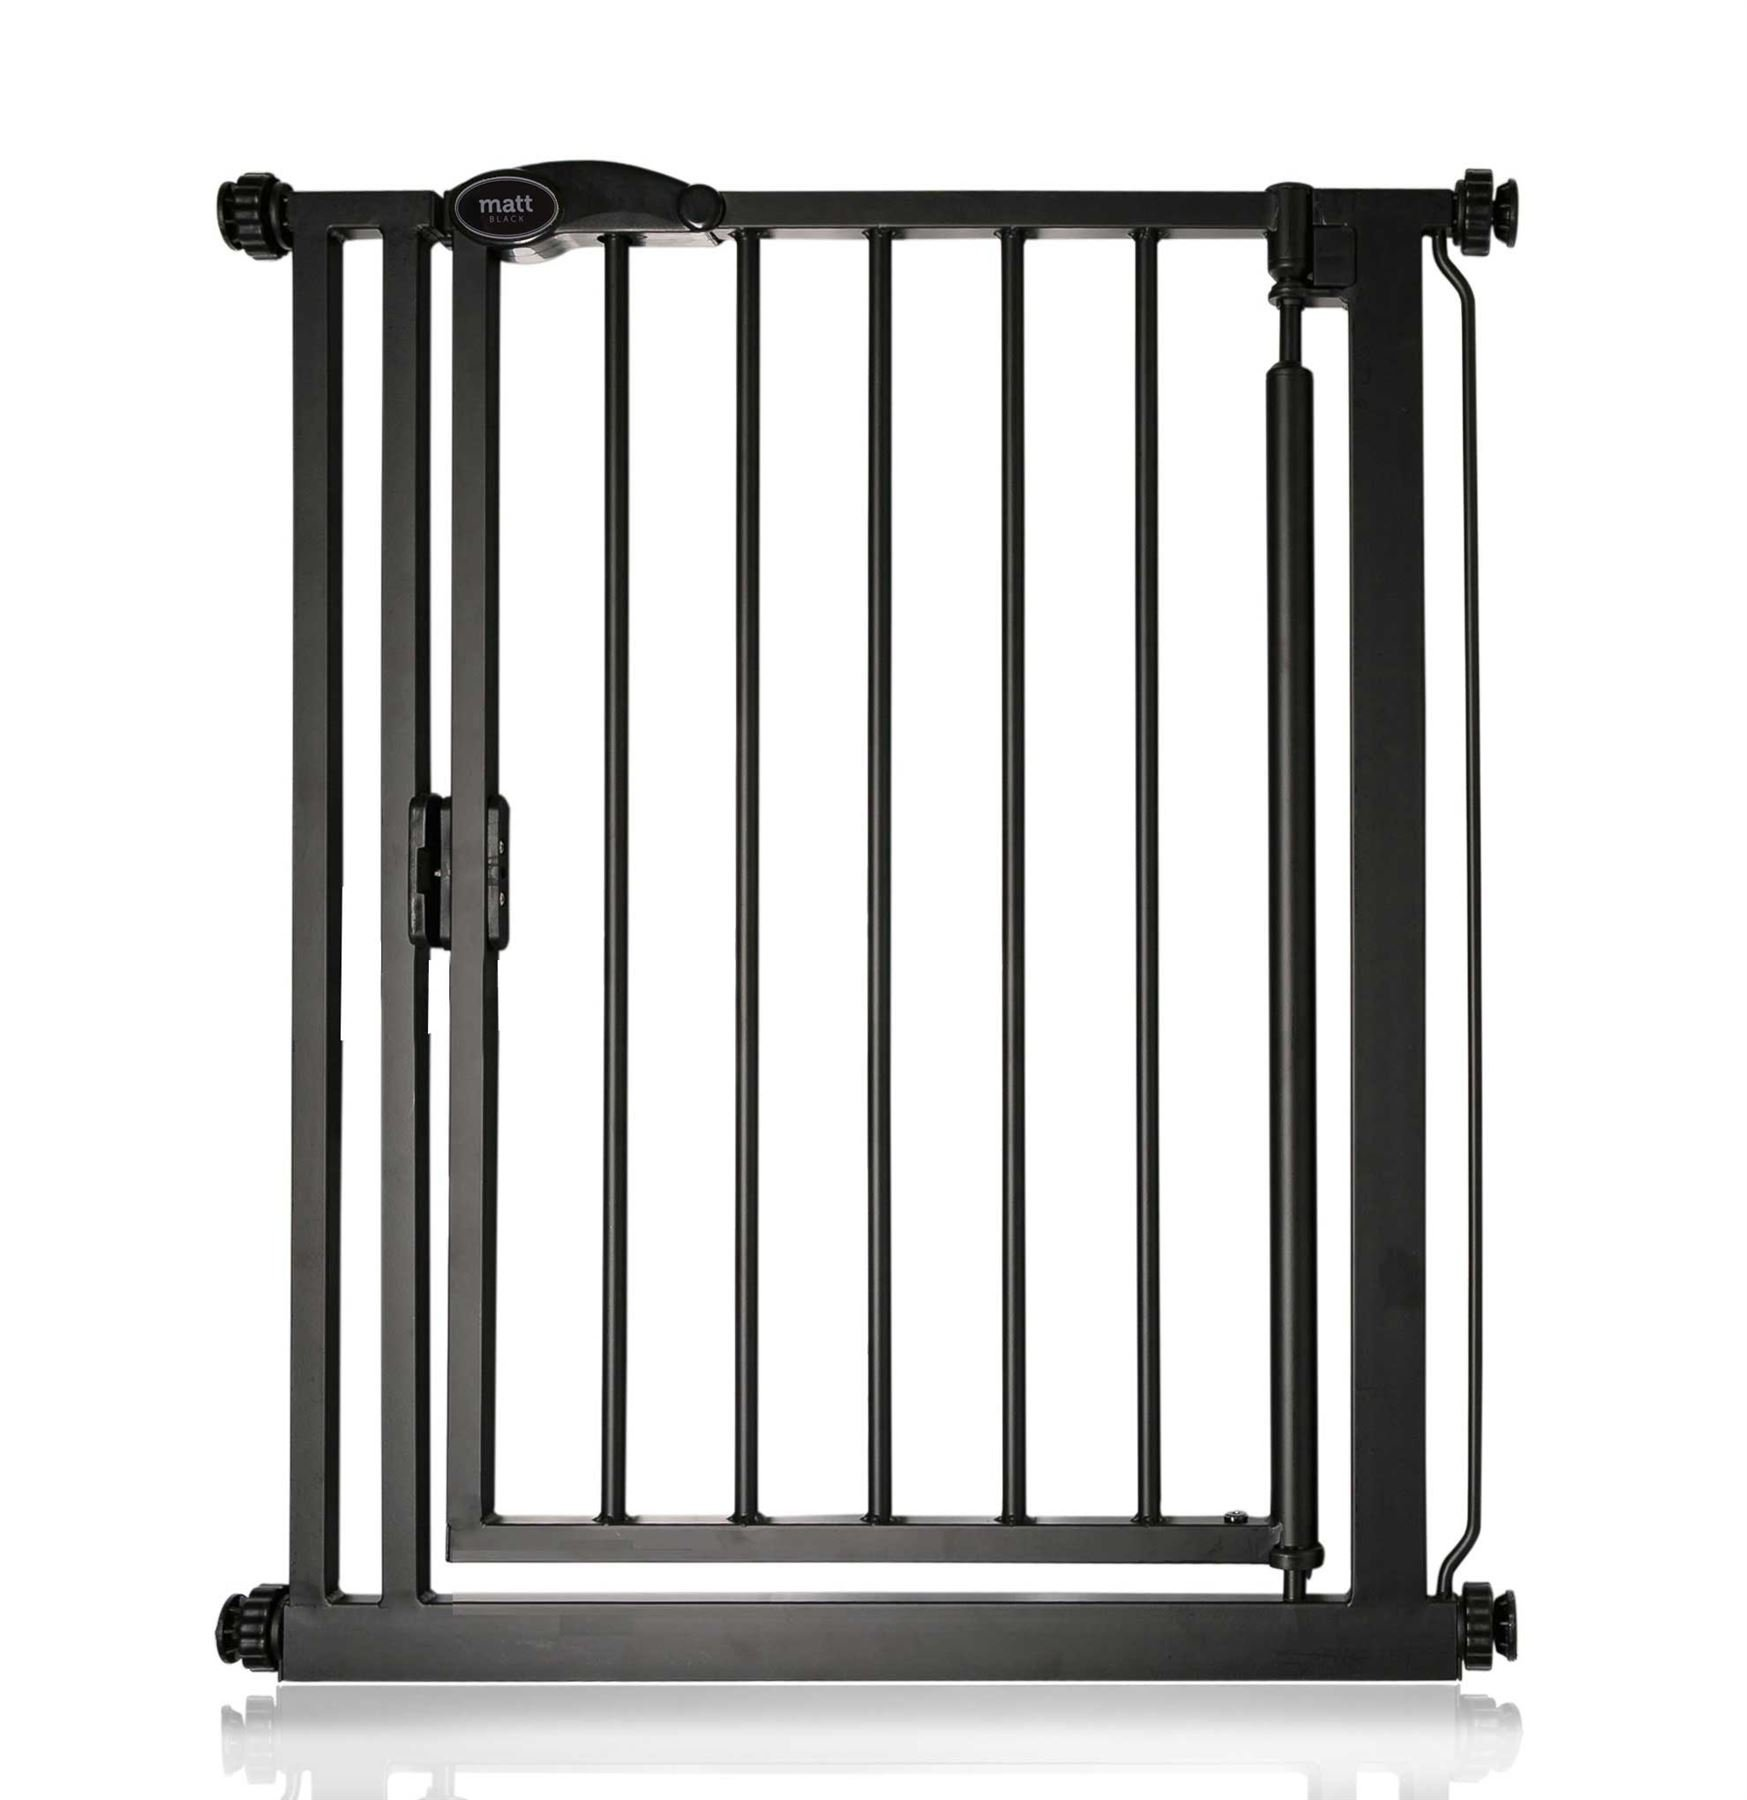 Safetots Auto Close Baby Gate Matt Black Range (68.5cm - 75cm) Safetots Fits openings from 68.5cm to 75cm Pressure fitted Stair Gate with Matt Black Finish One-handed operation with auto close function 1